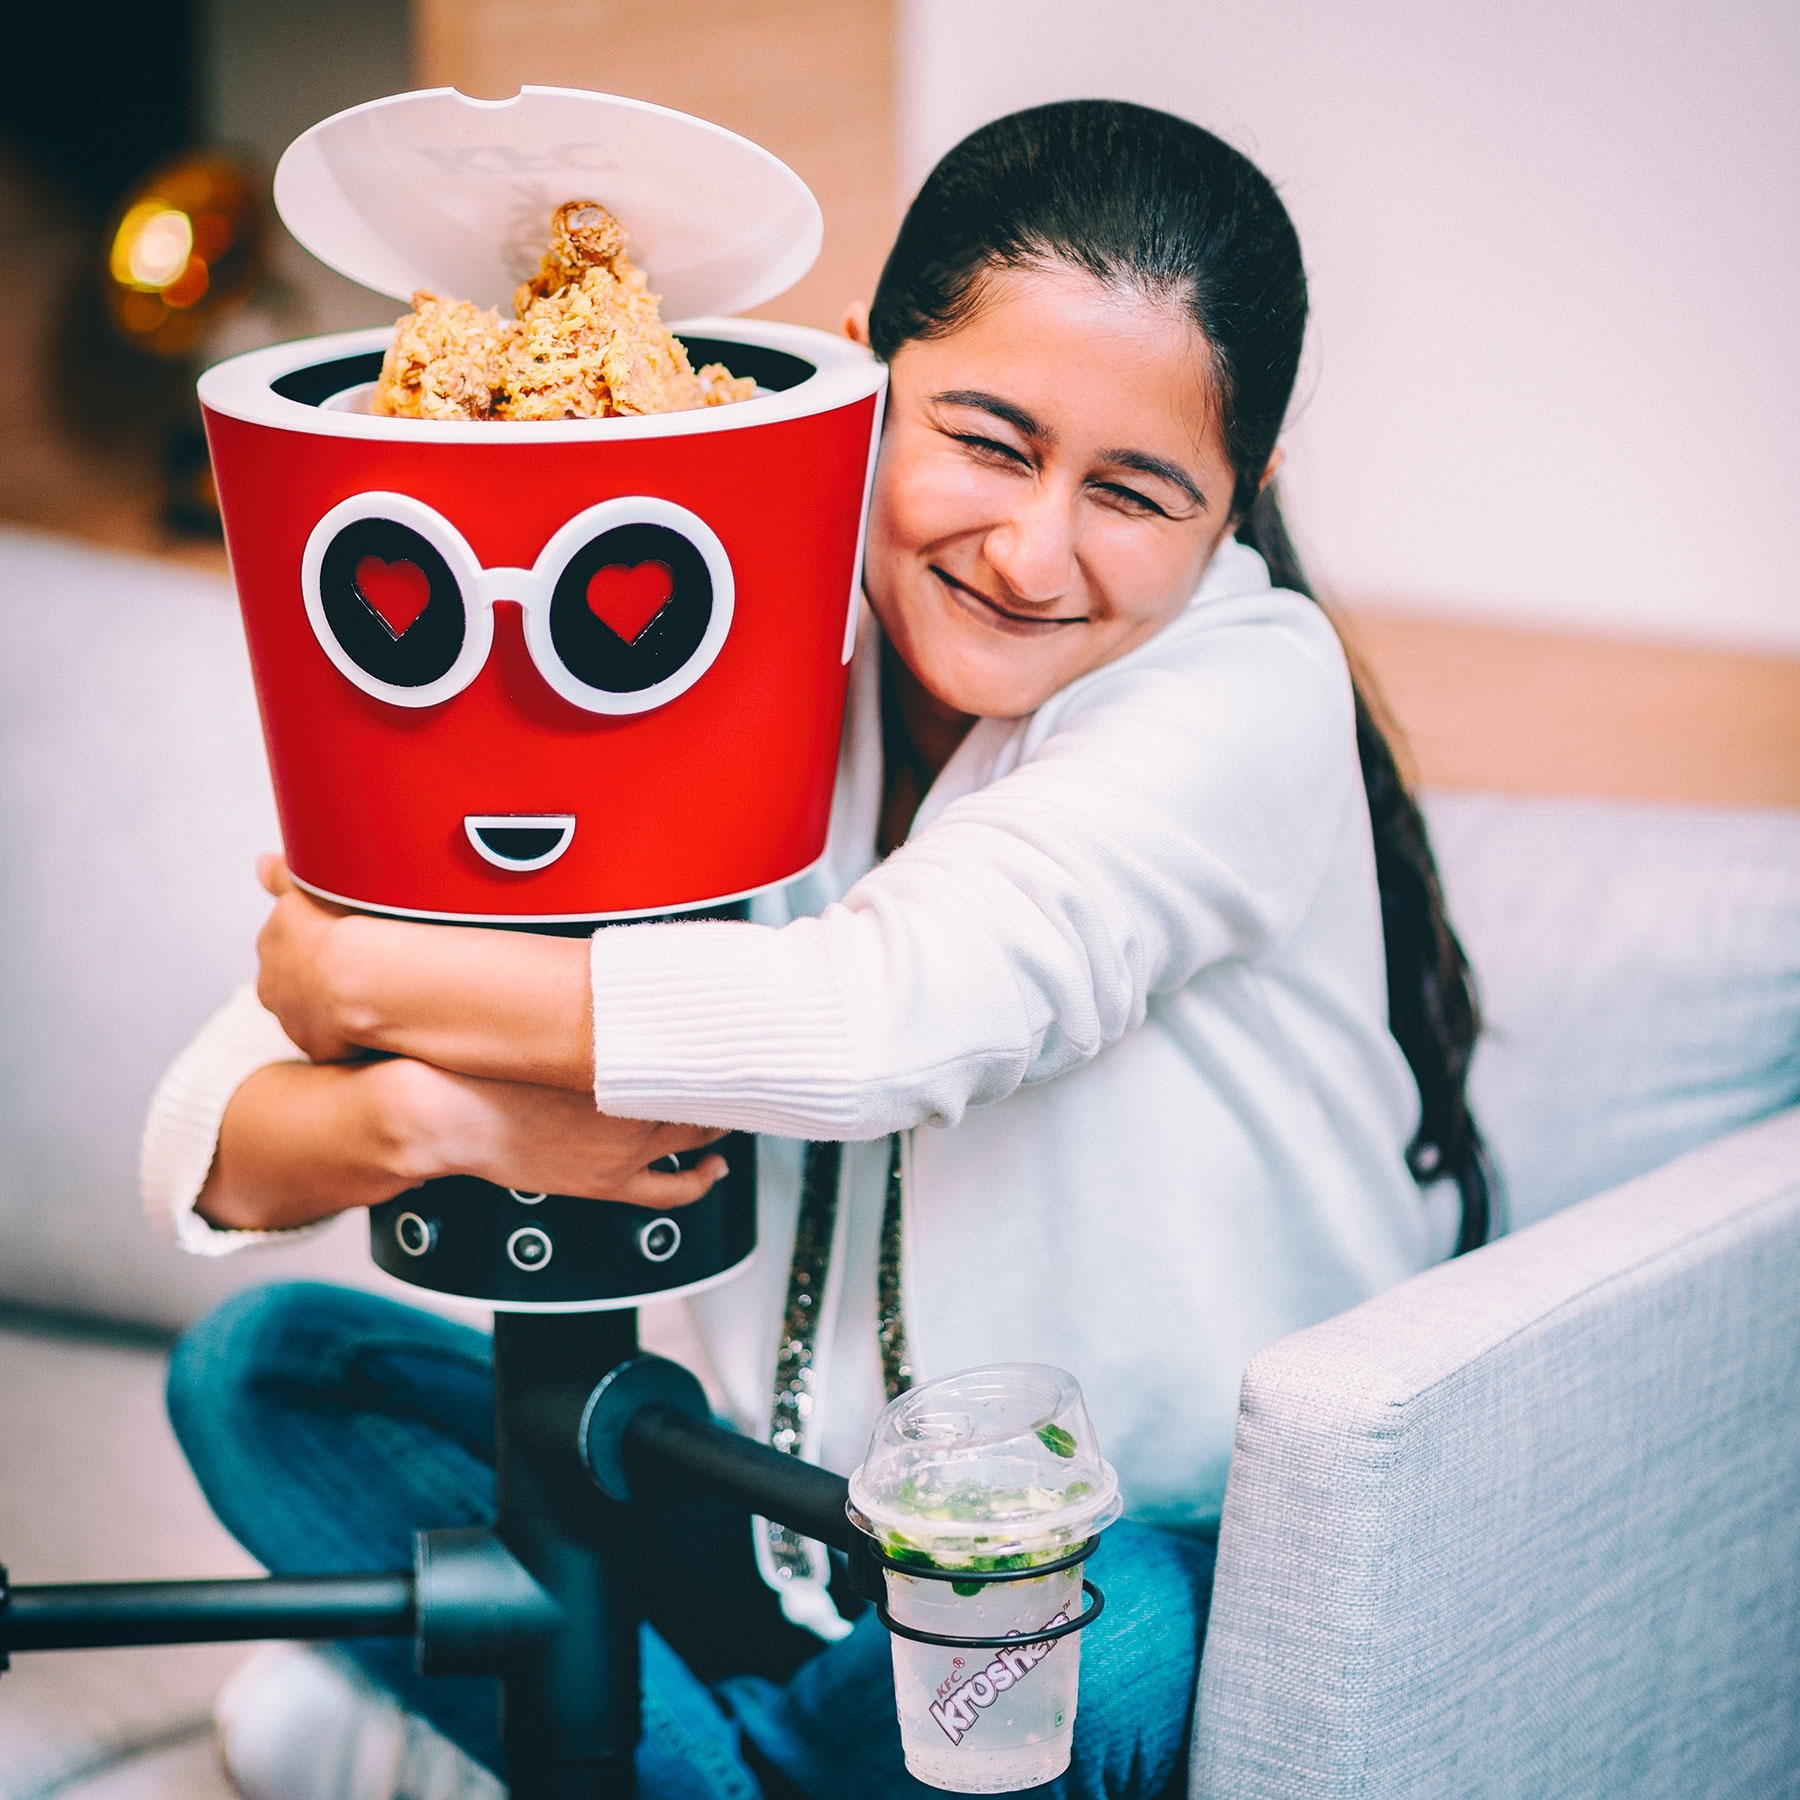 Naina.co, Naina Redhu, KFCBucketBae, BucketBae, KFC, Kentucky Fried Chicken, Yum, Bucket Bae, Bluetooth, Chicken, Valentine, Valentine's Day, Photography Client, Photography Assignment, Instagram Photos, Love, Chicken Love, Finger Lickin Good, KFC, KFCIndia, KFC Robot